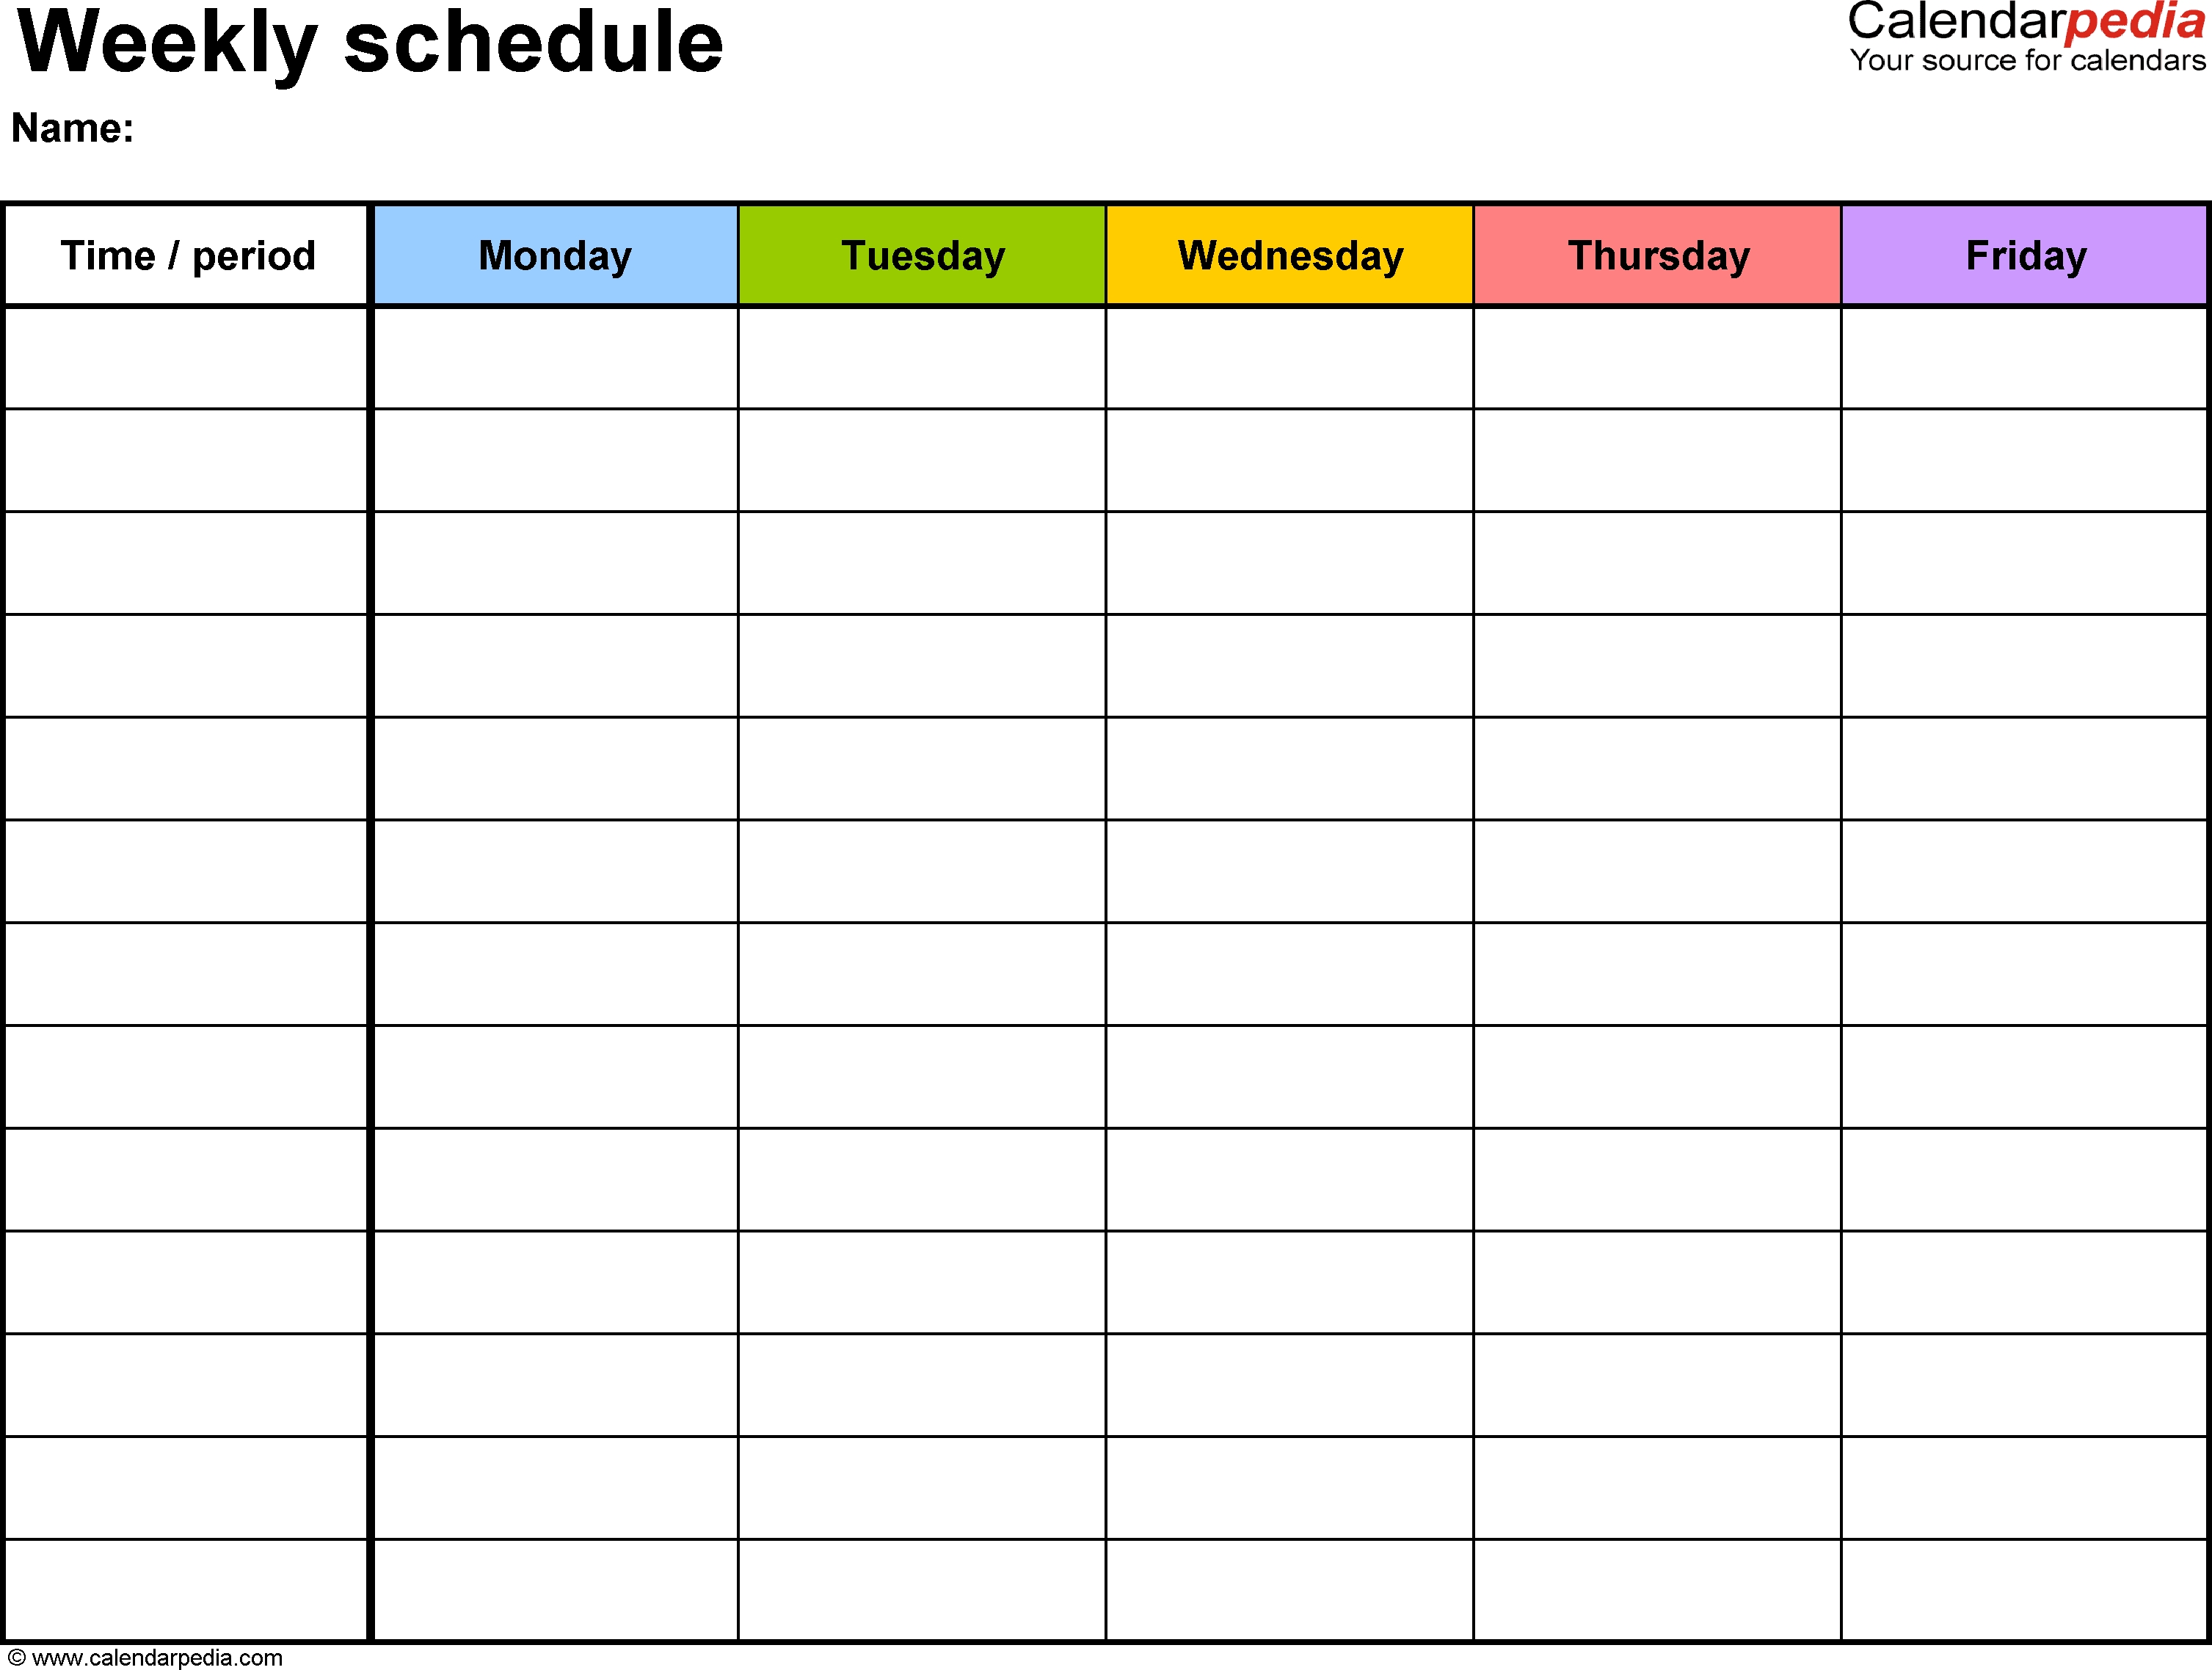 Free Weekly Schedule Templates For Word - 18 Templates with Blank Weekly Calendar To Fill In